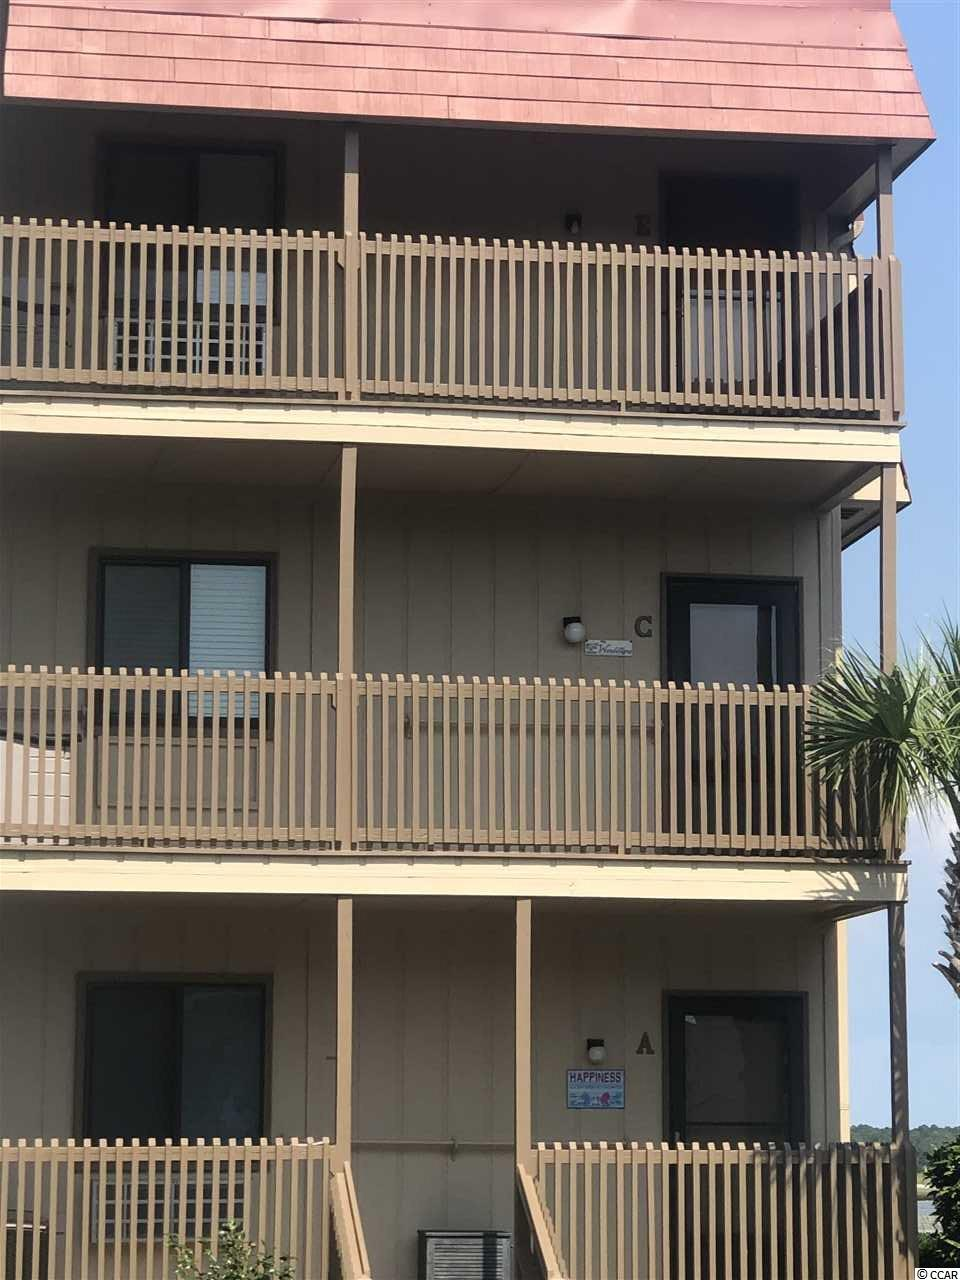 Do not pass on the rare chance to purchase this completely renovated unit at Inlet Point Villas on the prestigious Cherry Grove Beach.  This unit features panoramic views of the beautiful Atlantic Ocean and the Inlet. This gated community has an outdoor pool and tennis court.  Brand New Stainless Steel Appliances highlight the gorgeous granite countertops and new backsplash.  Make it a point to take a look at this two bedroom two bath fully furnished condo.  An ideal place to sit back relax and call home or rent.  All measurements are approximate and data are deemed reliable but are not guaranteed, buyer and/or buyer's agent to verify.